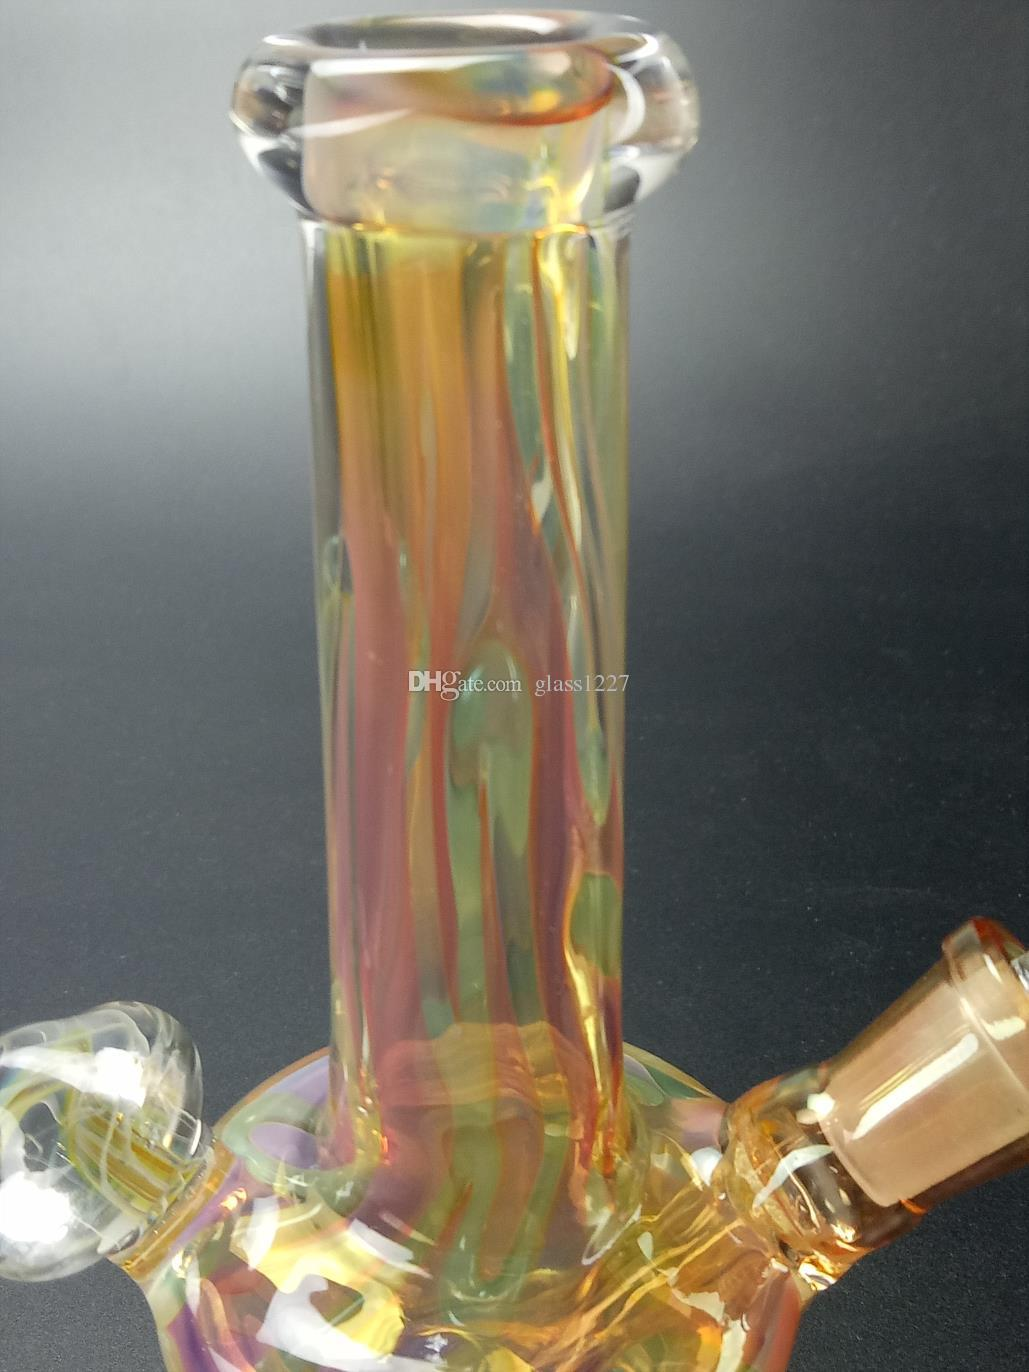 Low price high quality glass water pipe yellow bottle filter glass sound recycle station